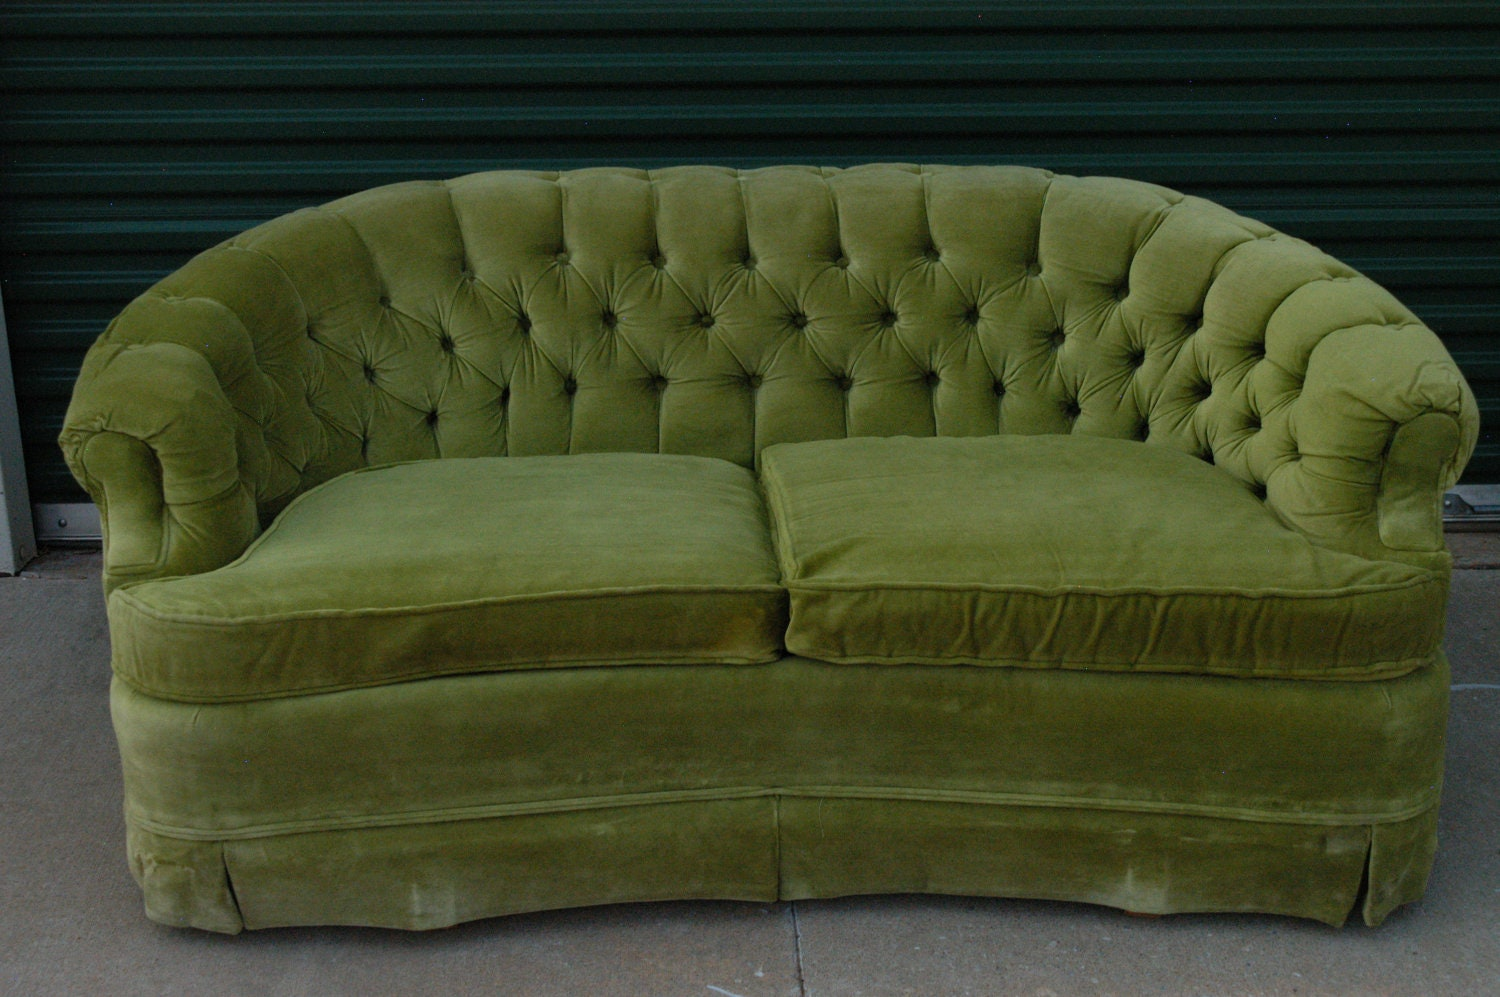 Vintage Lime Green Loveseat Sofa By By Thetravelingowlshop On Etsy